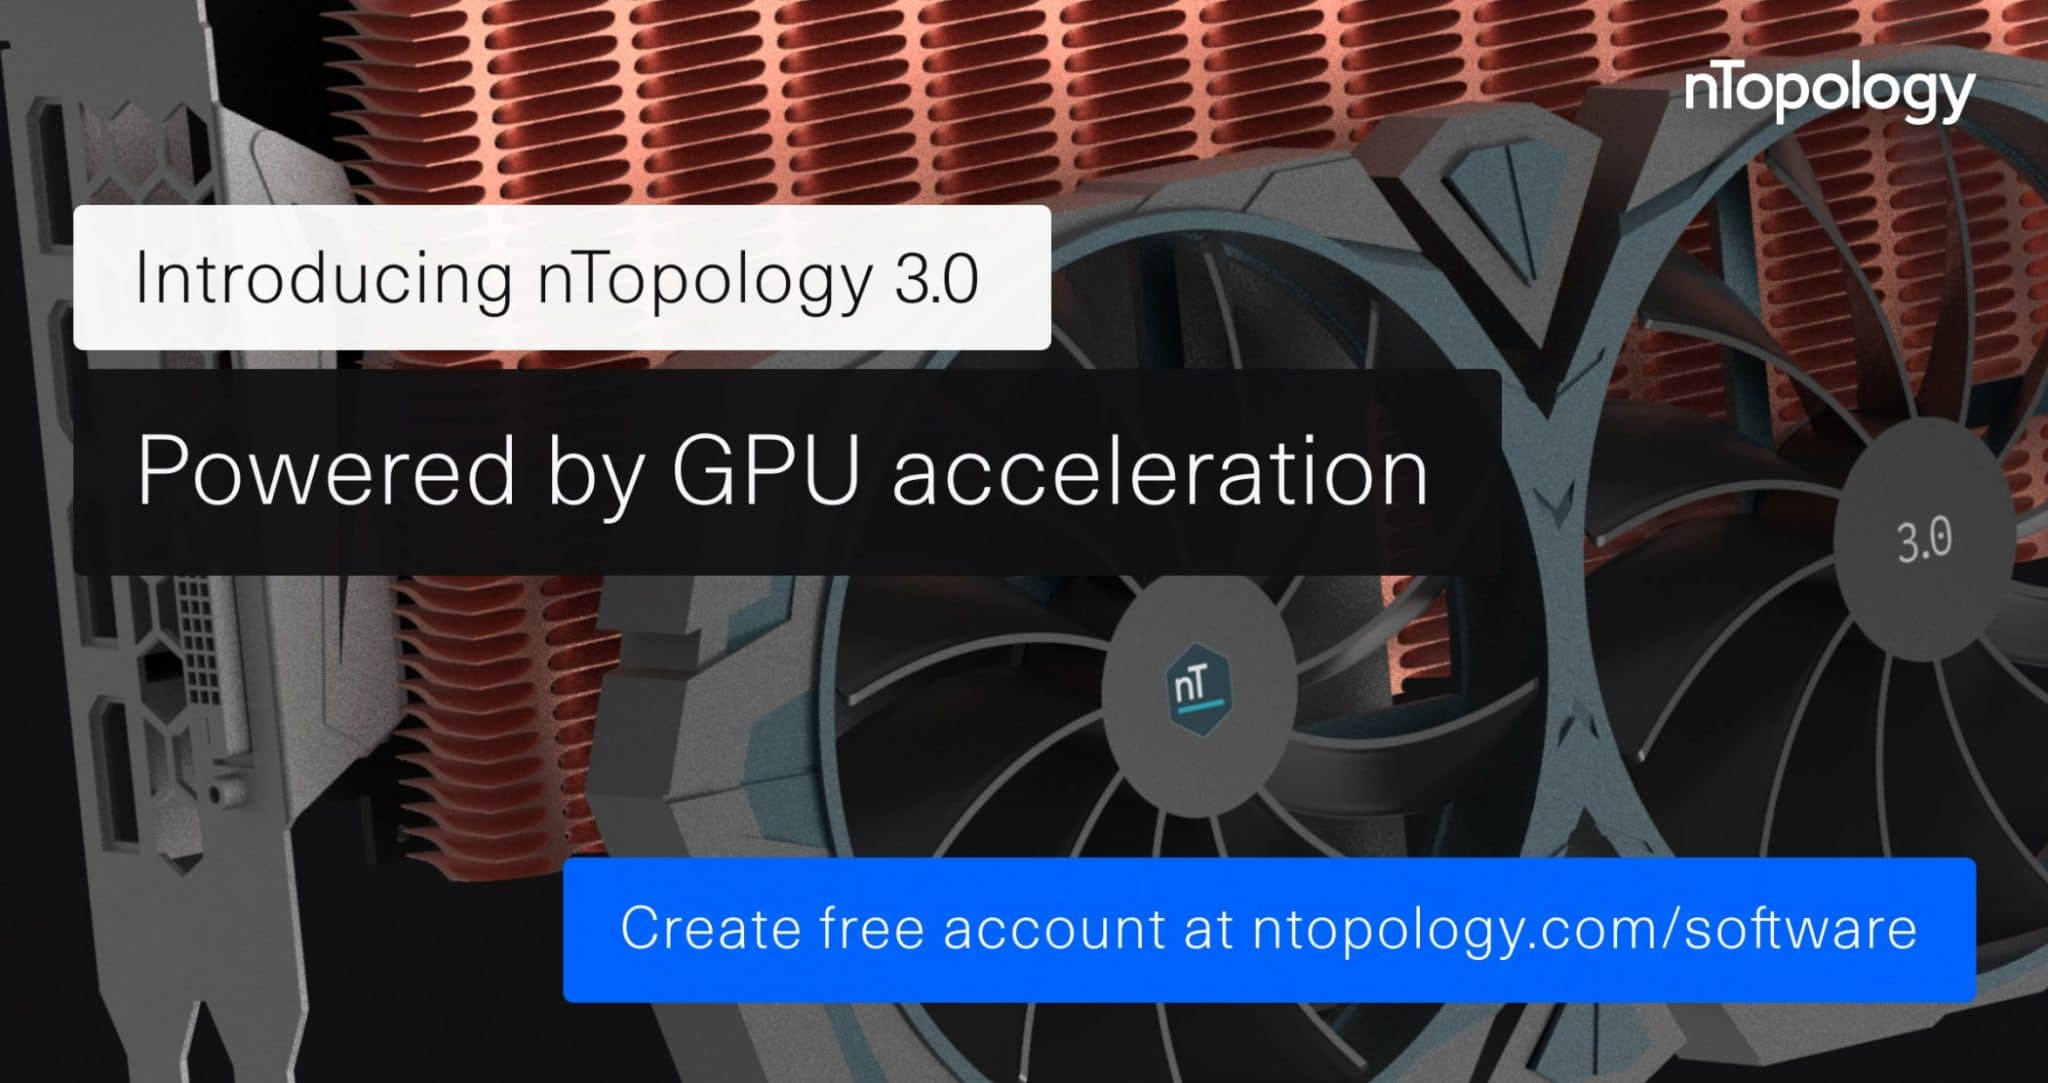 New nTopology 3.0 introduces real-time visualization with GPU acceleration